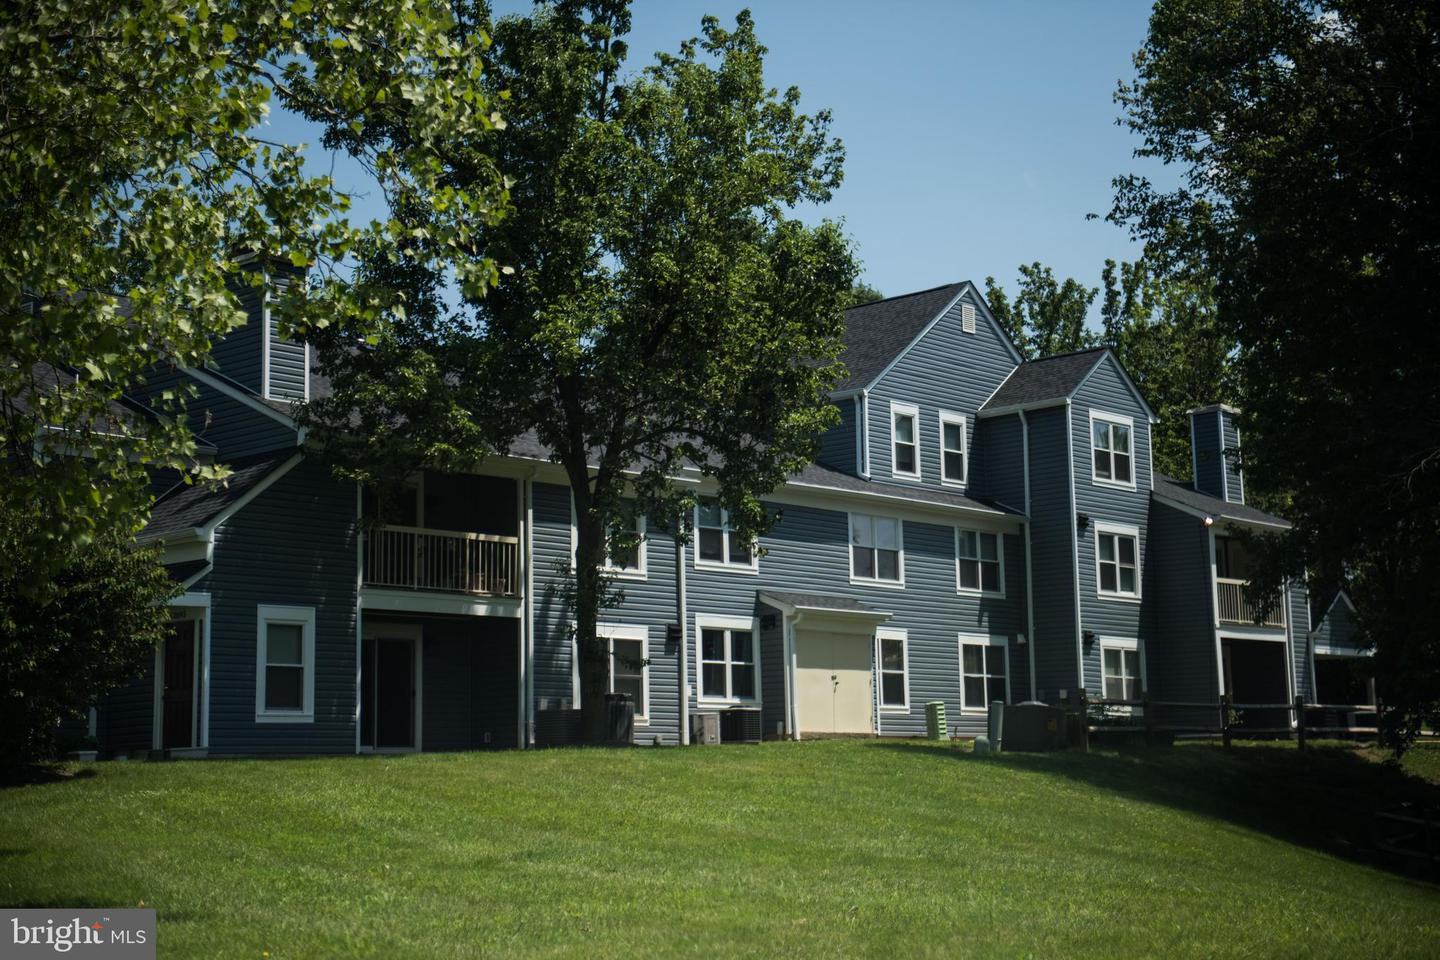 condominiums for Sale at 13667 Orchard Dr #3667 Clifton, Virginia 20124 United States